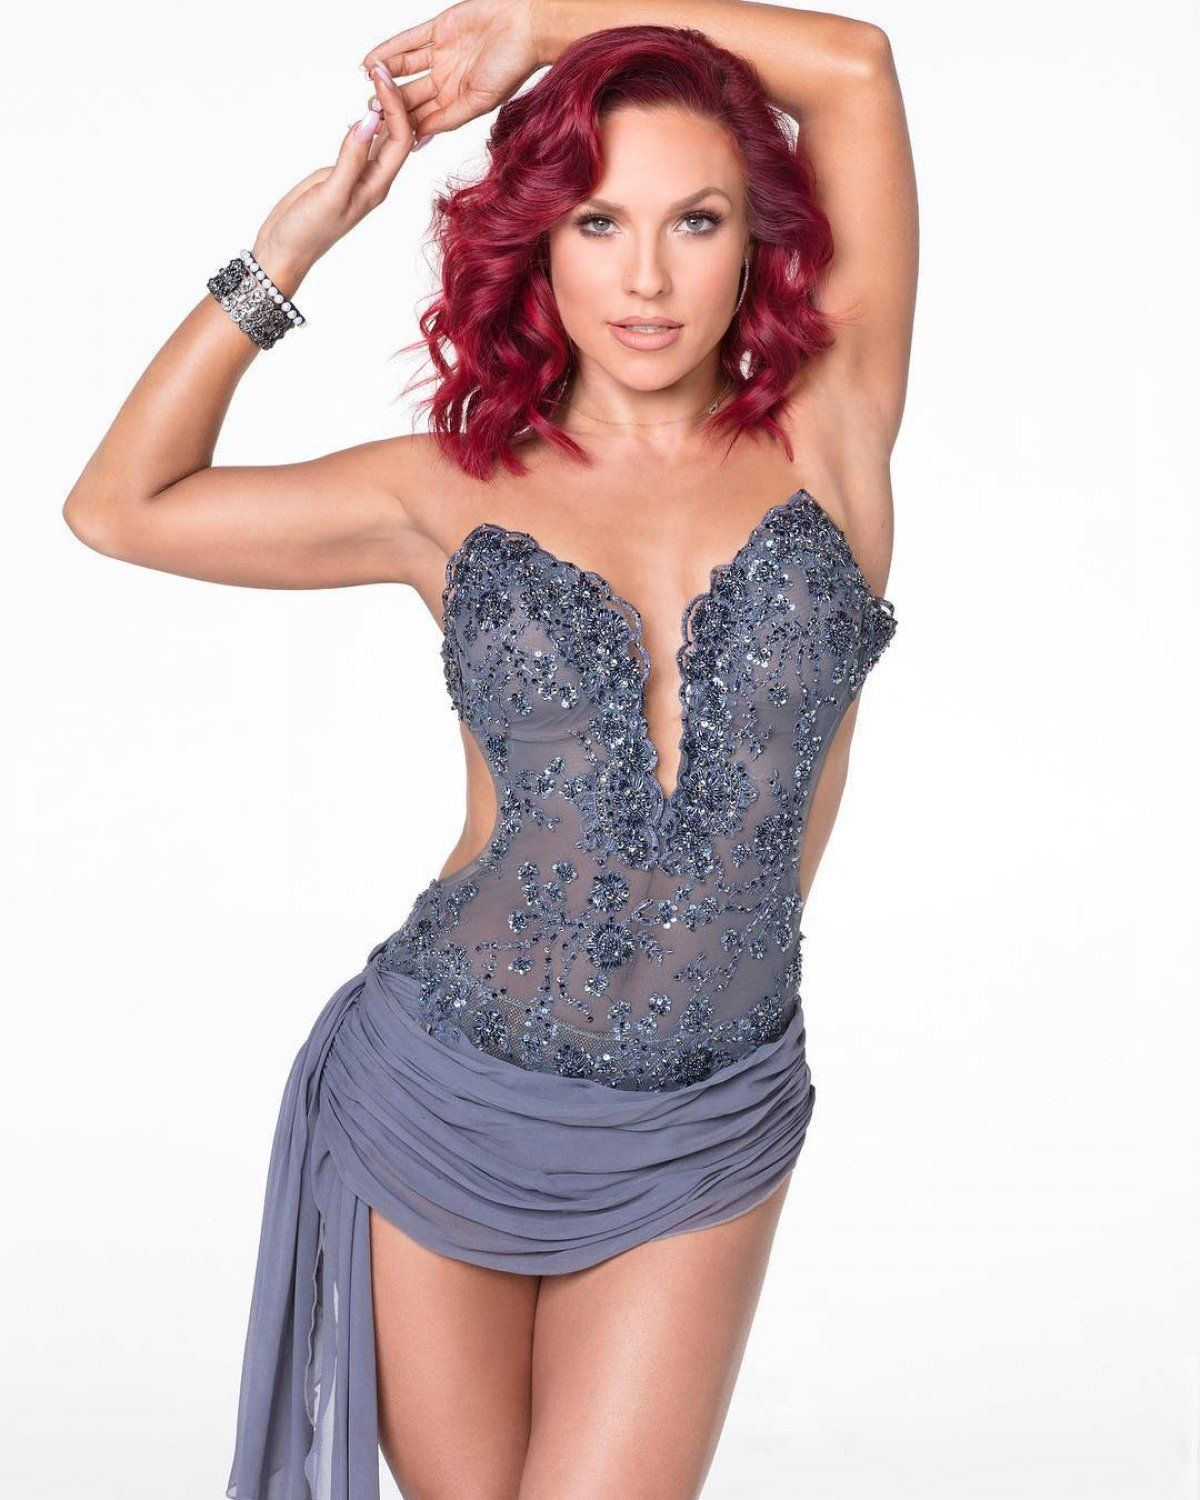 Sharna Burgess -- 5 things to know about the 'Dancing with the Stars: Athletes' pro dancer #dancingwiththestars